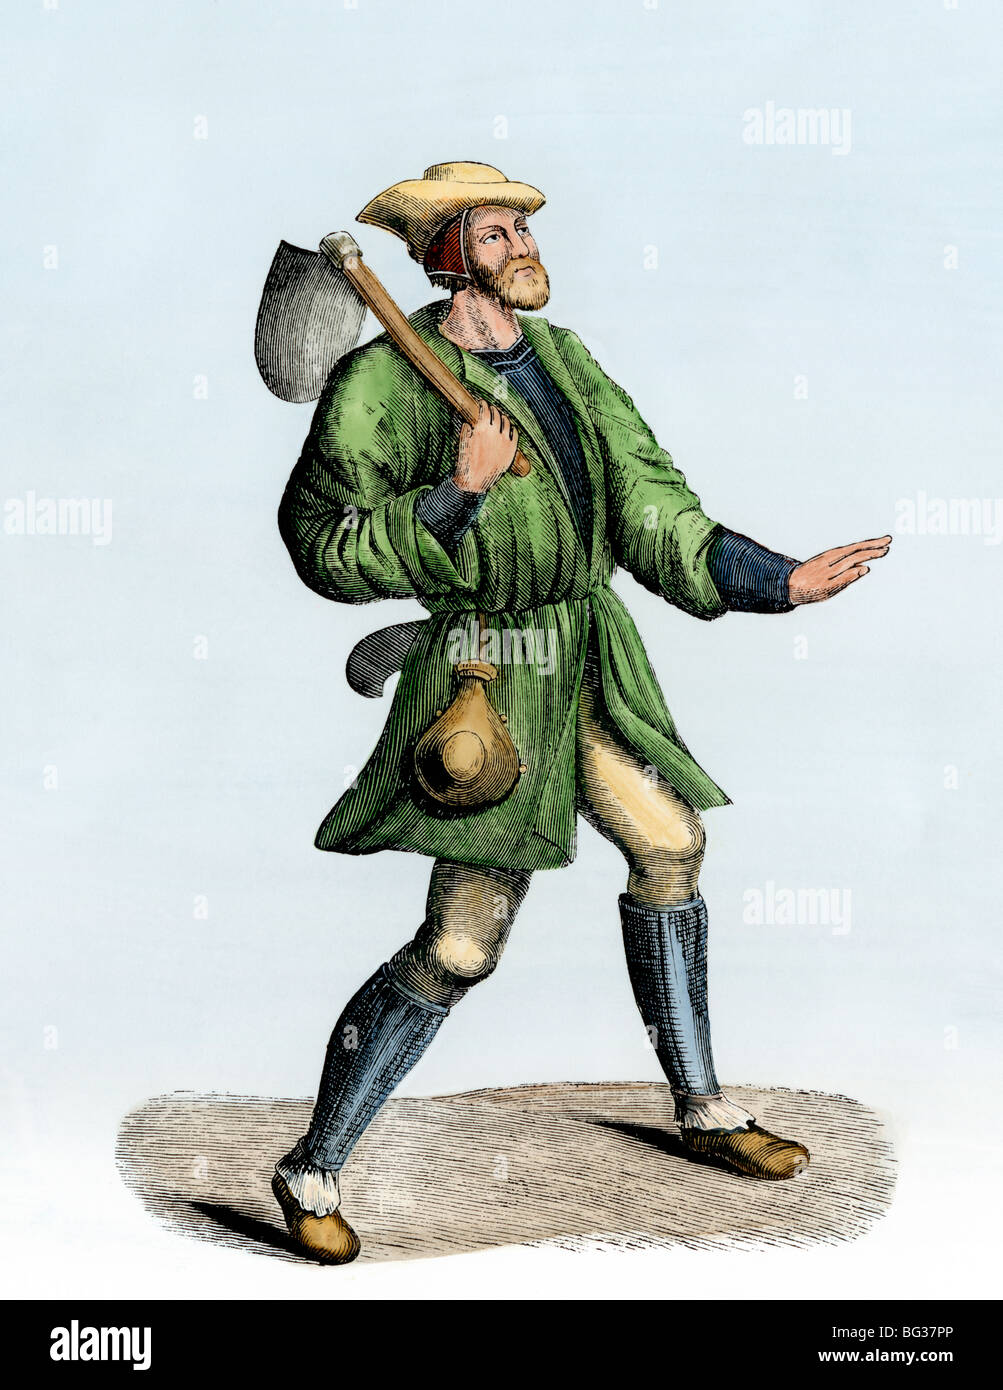 Peasant carrying a shovel in the 1400s. Hand-colored woodcut - Stock Image